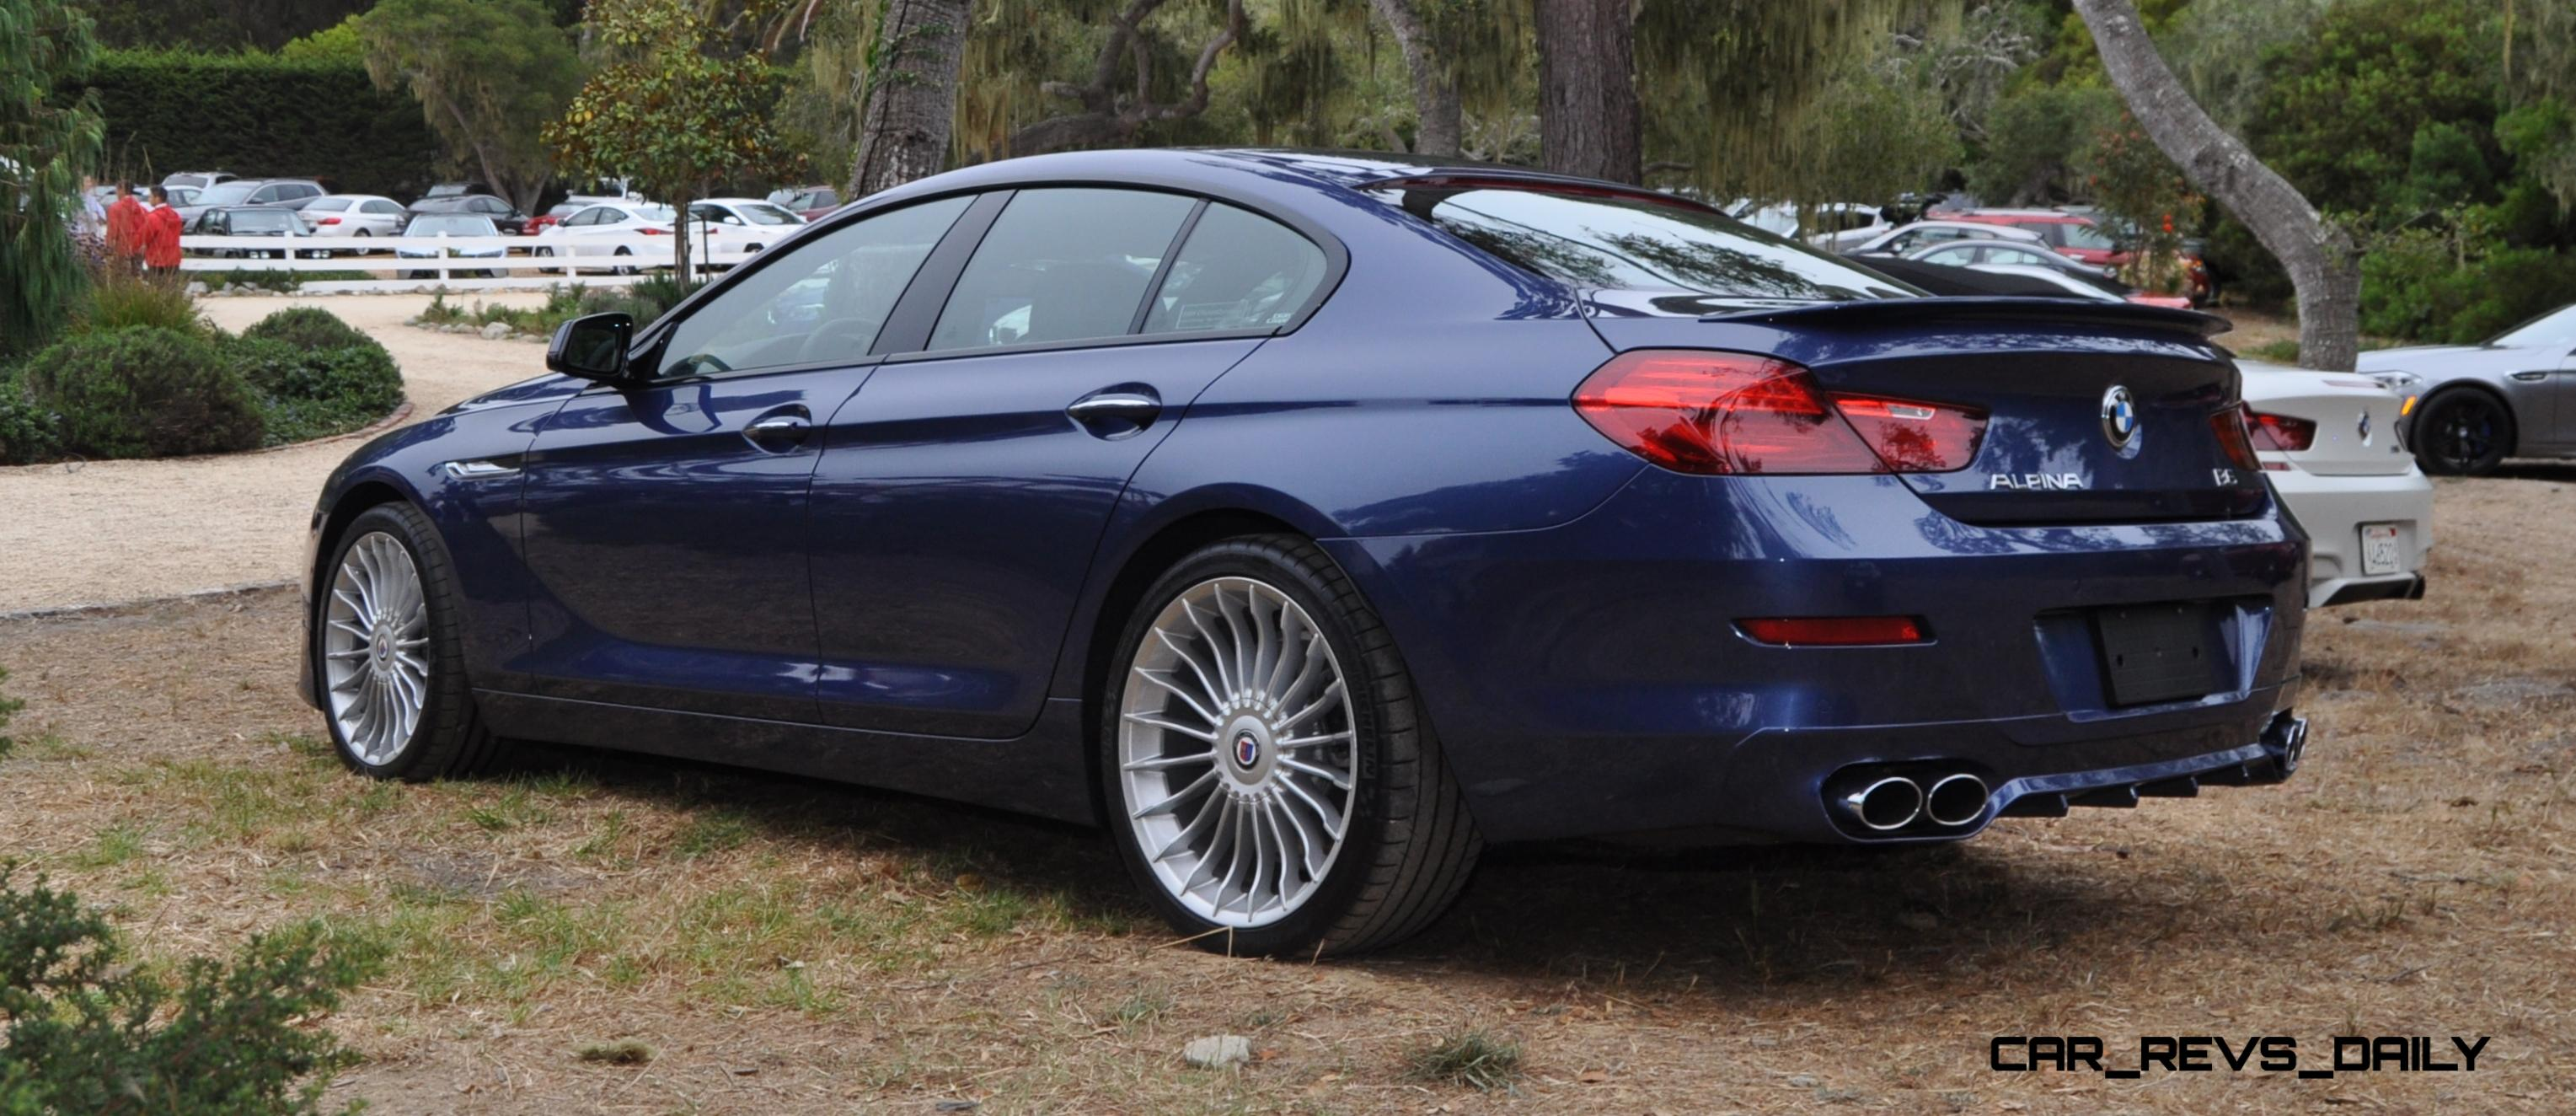 HP S BMW ALPINA B XDrive Gran Coupe Is Now Available - Bmw alpina price range